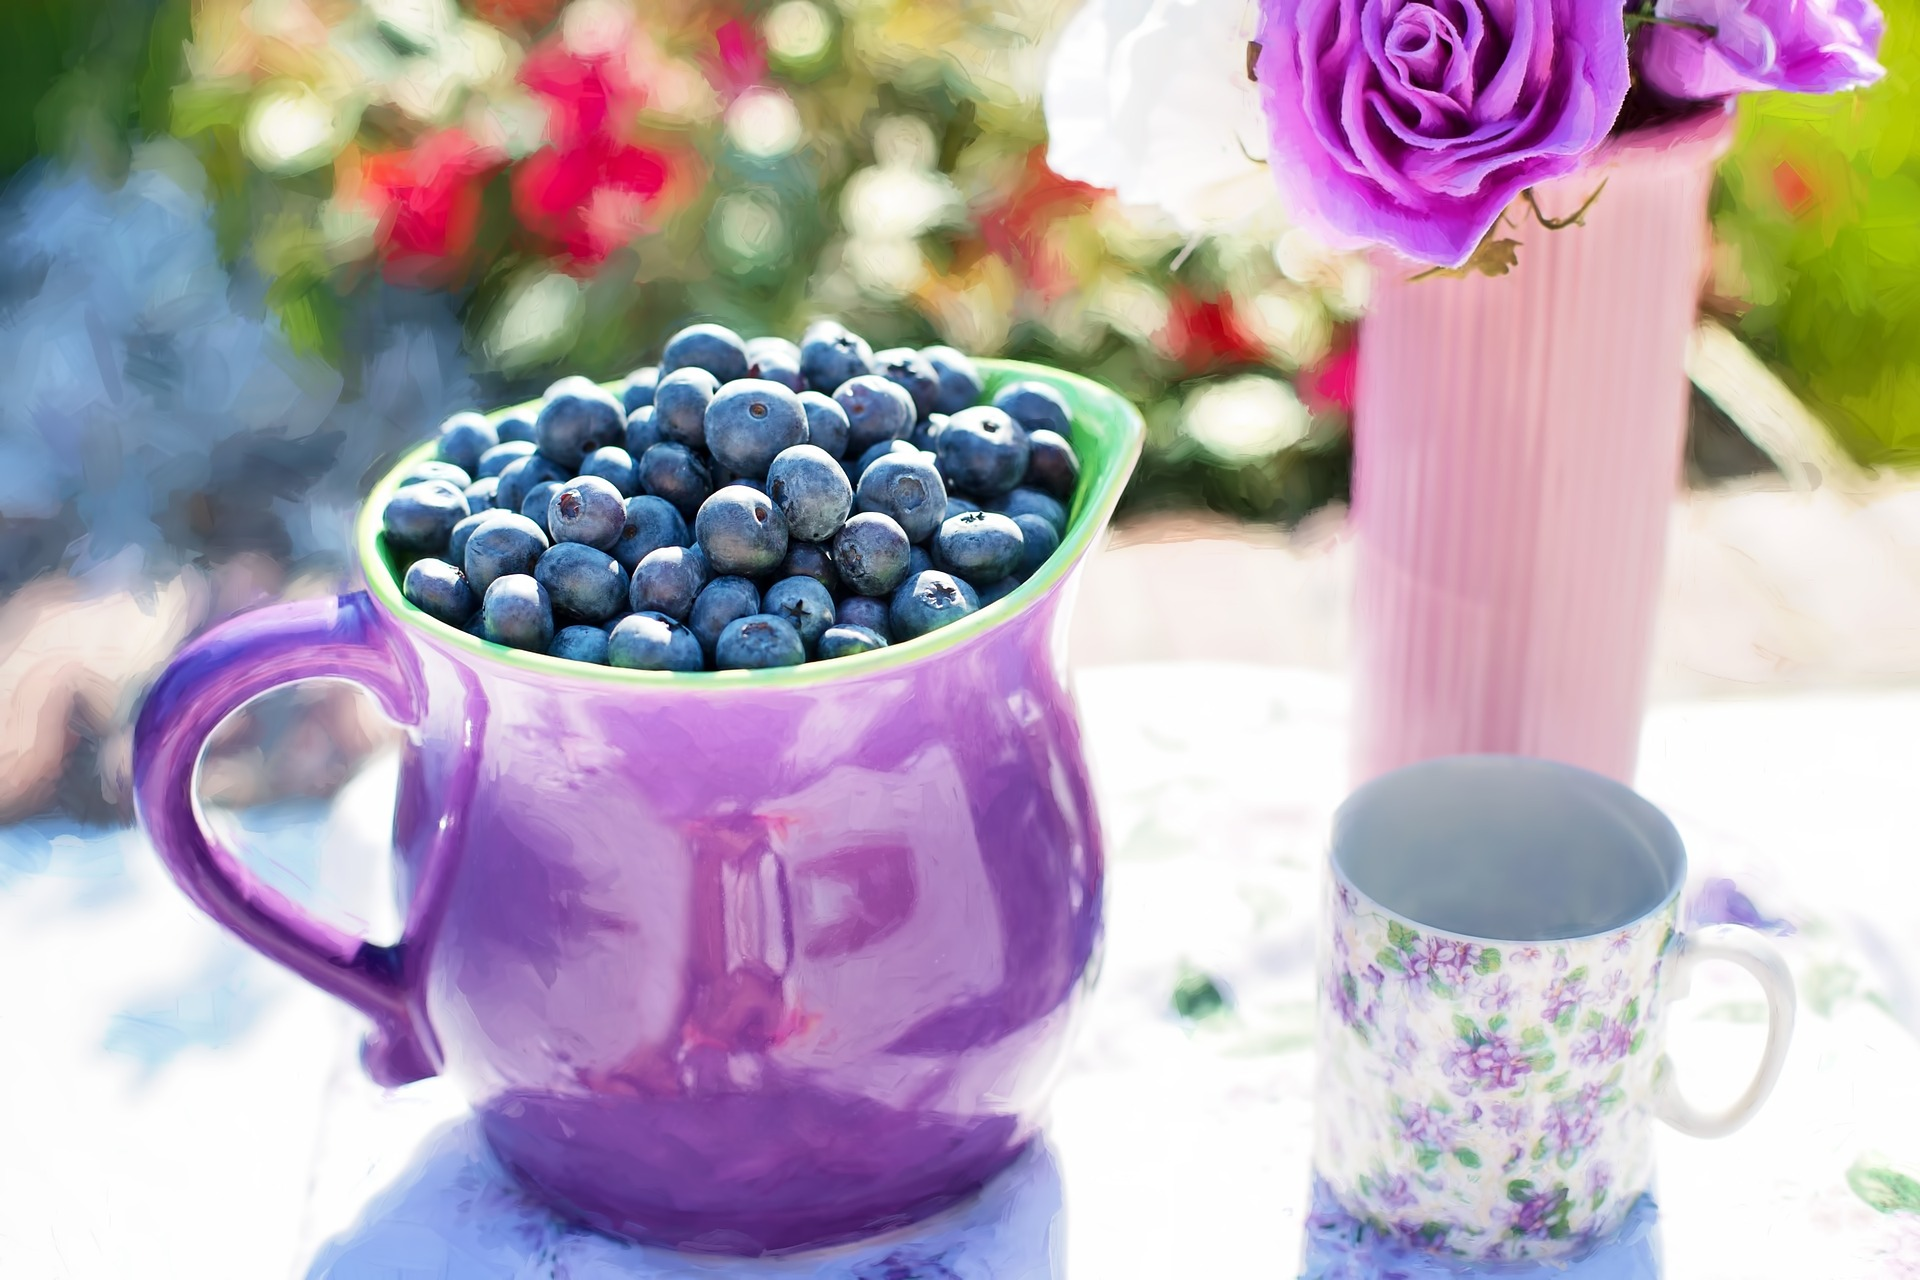 blueberries-864628_1920 (1)